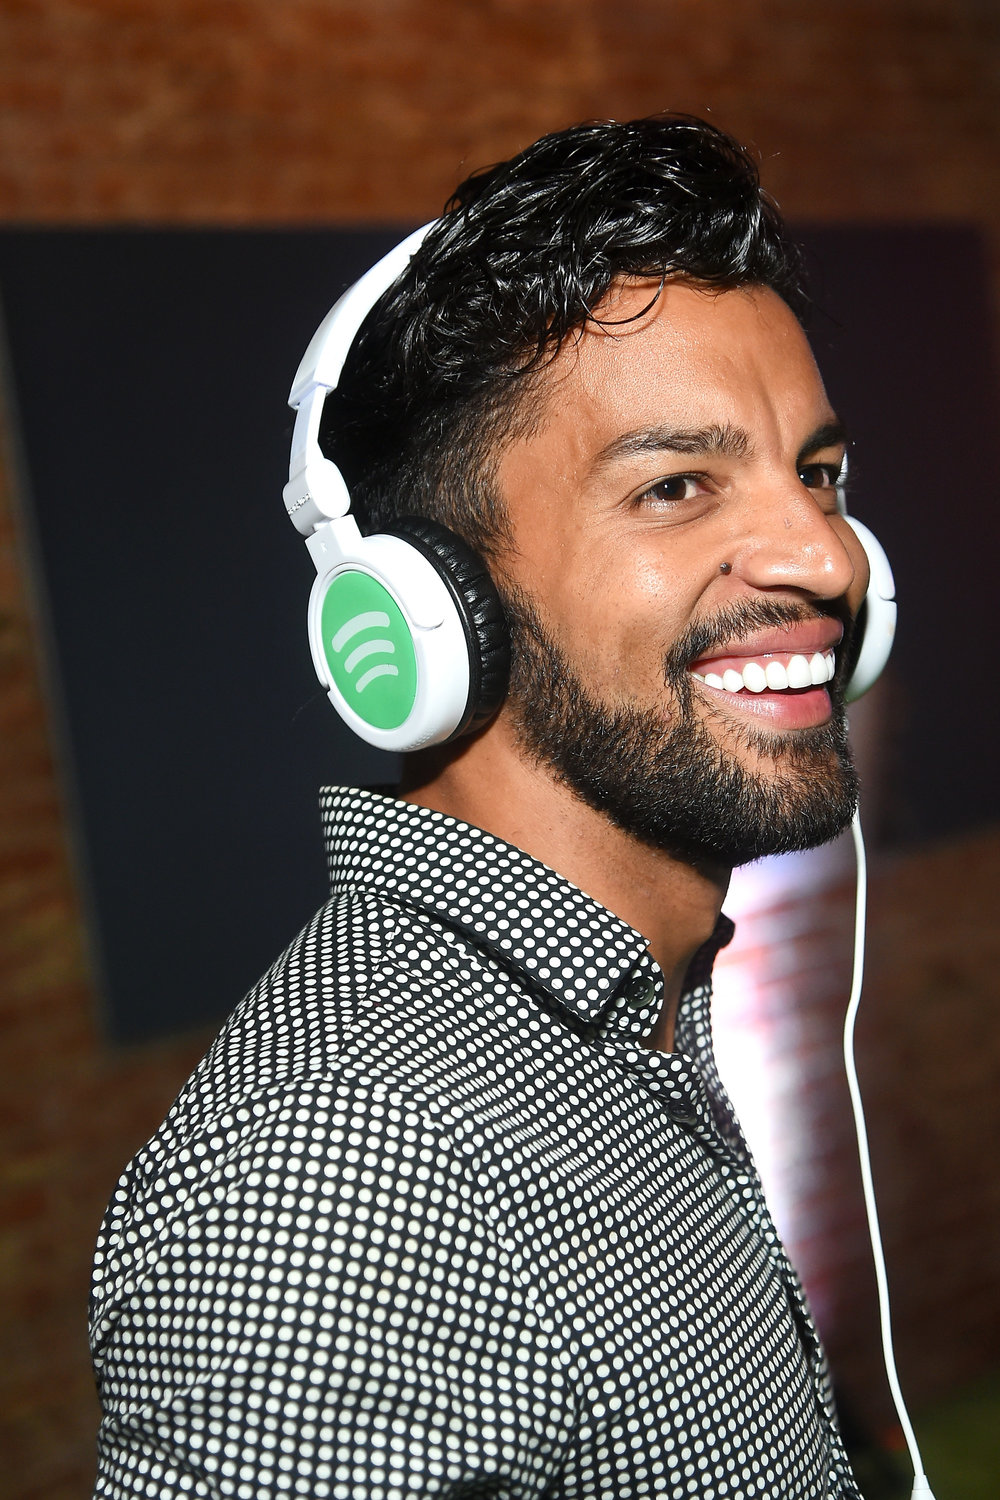 Spotify's Soundtrack de Mi Vida Campaign Celebration 7.jpg